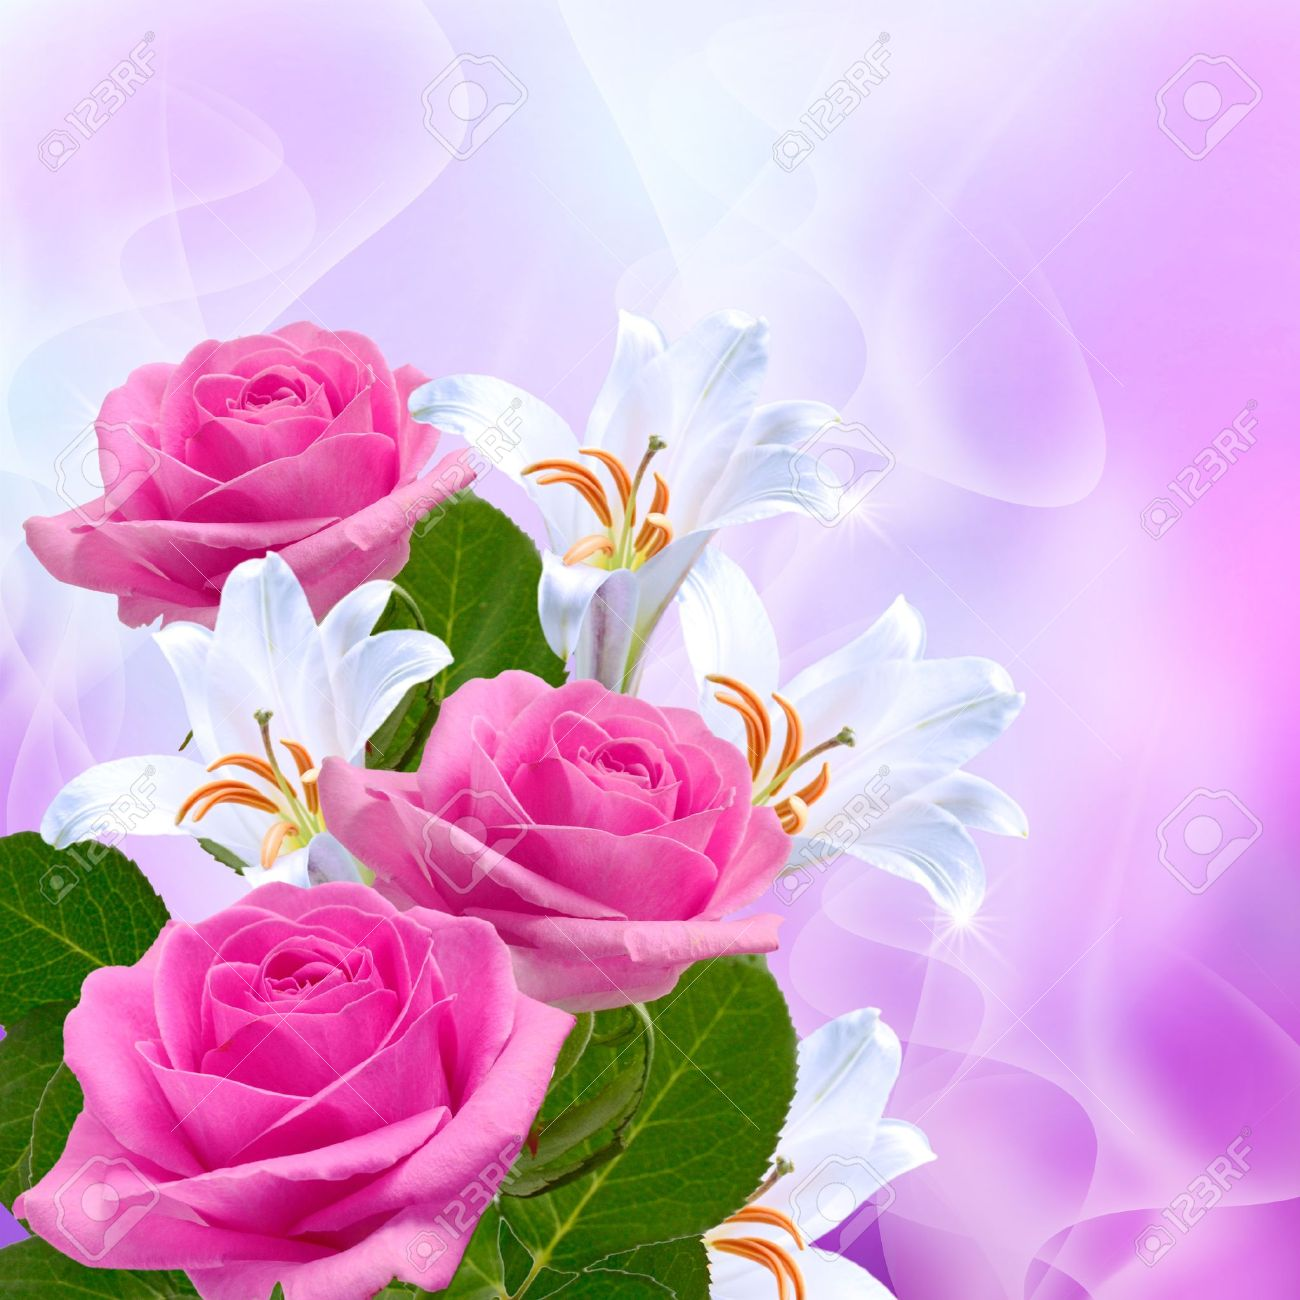 Pink roses and white lilies - 14937701